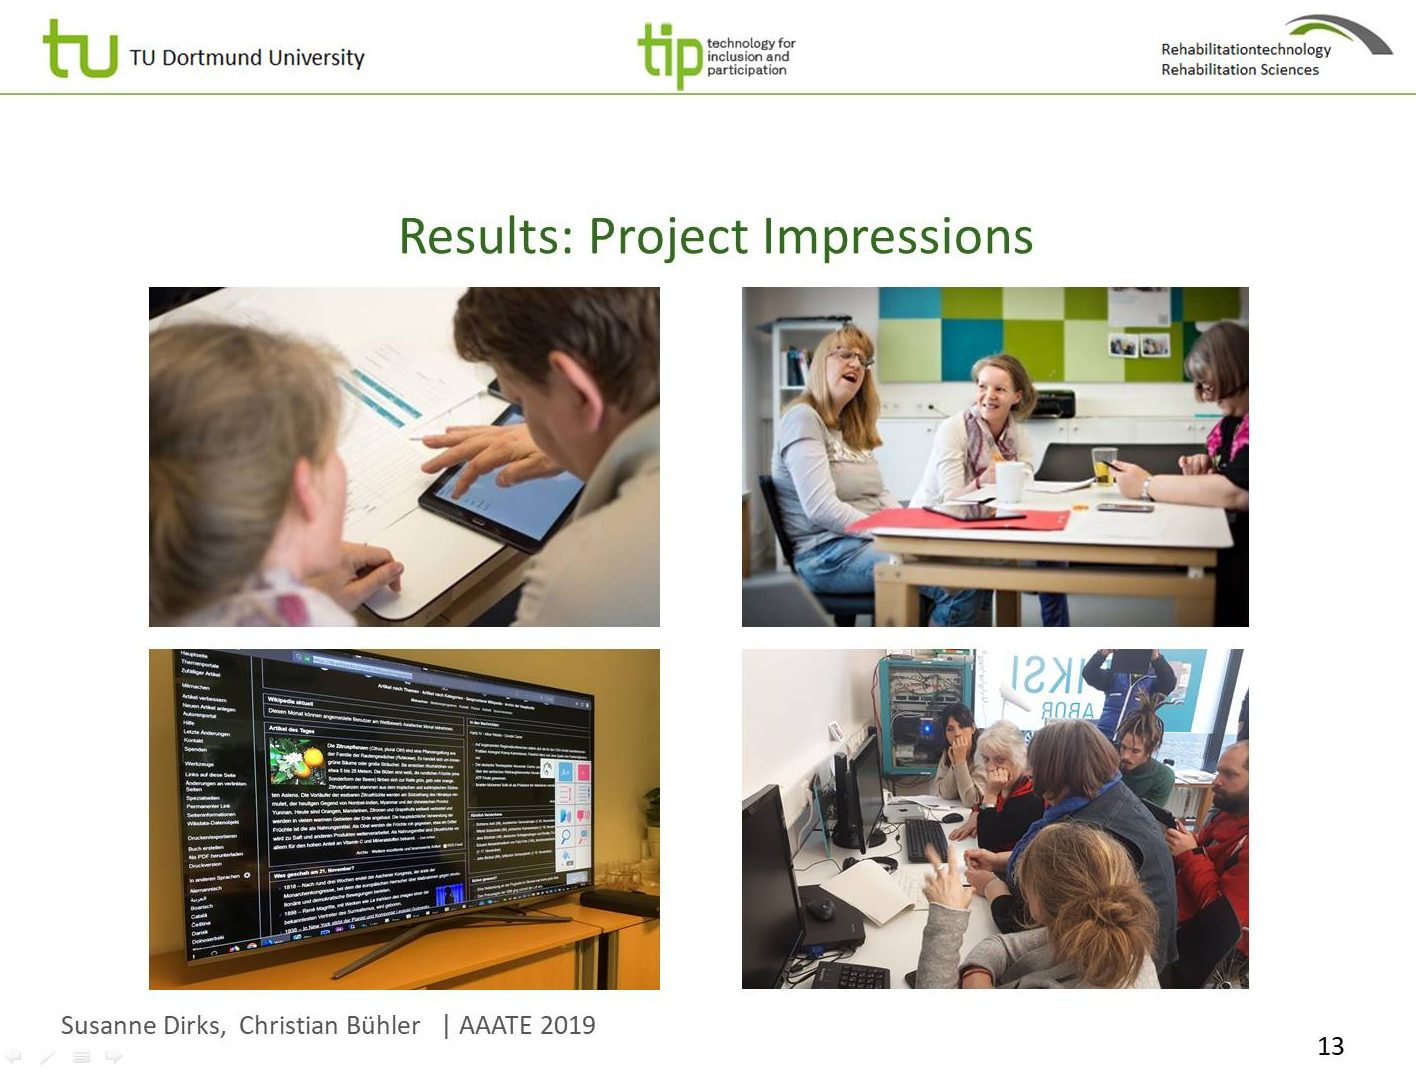 Chart with project impressions, peer-researcher working together with developers